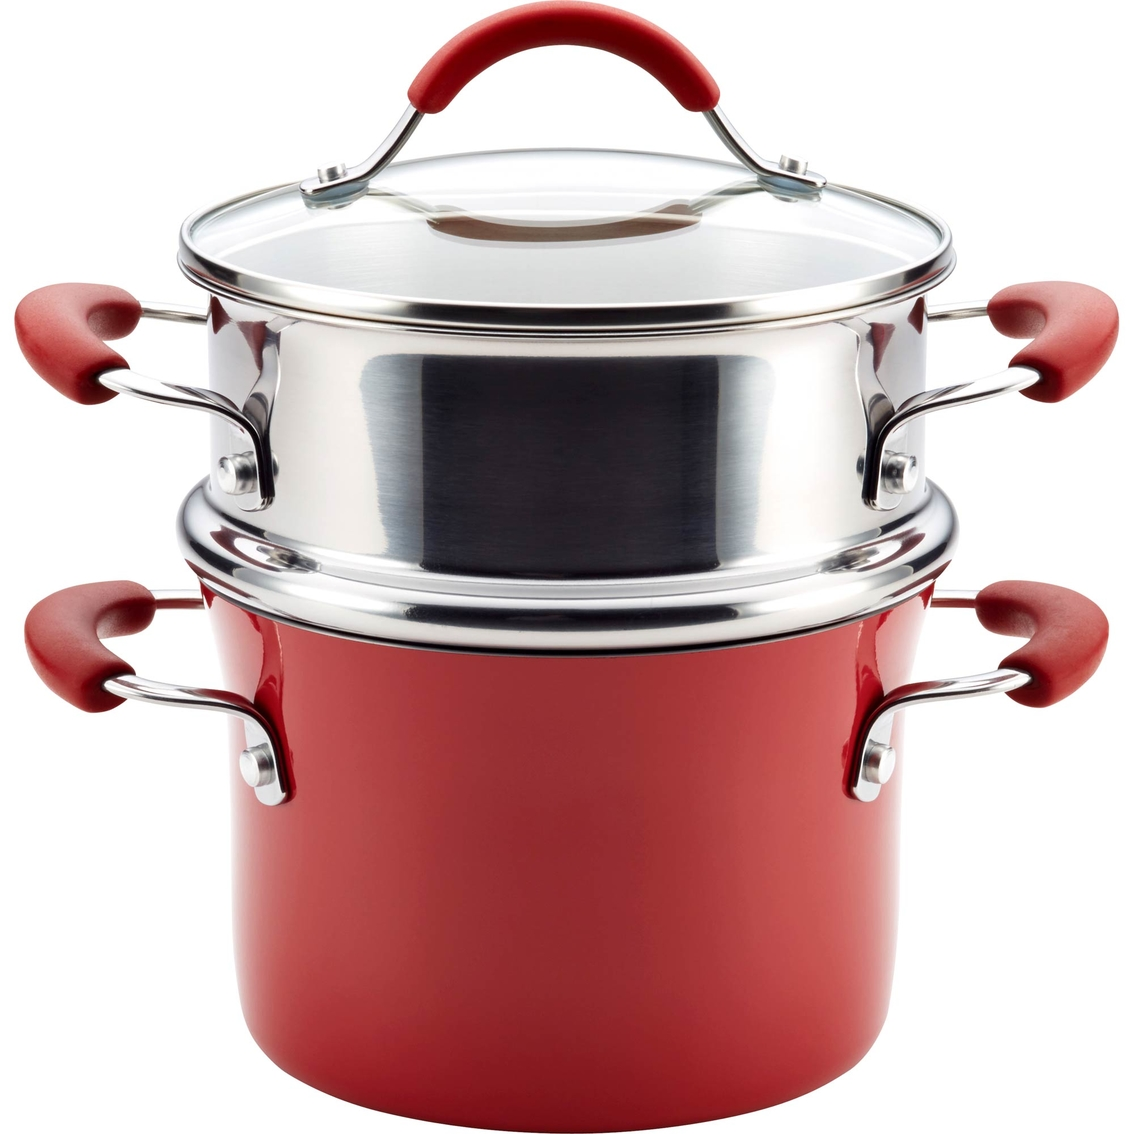 Cucina Kitchen Appliances Rachael Ray Cucina Hard Porcelain Enamel Nonstick Multi Pot With